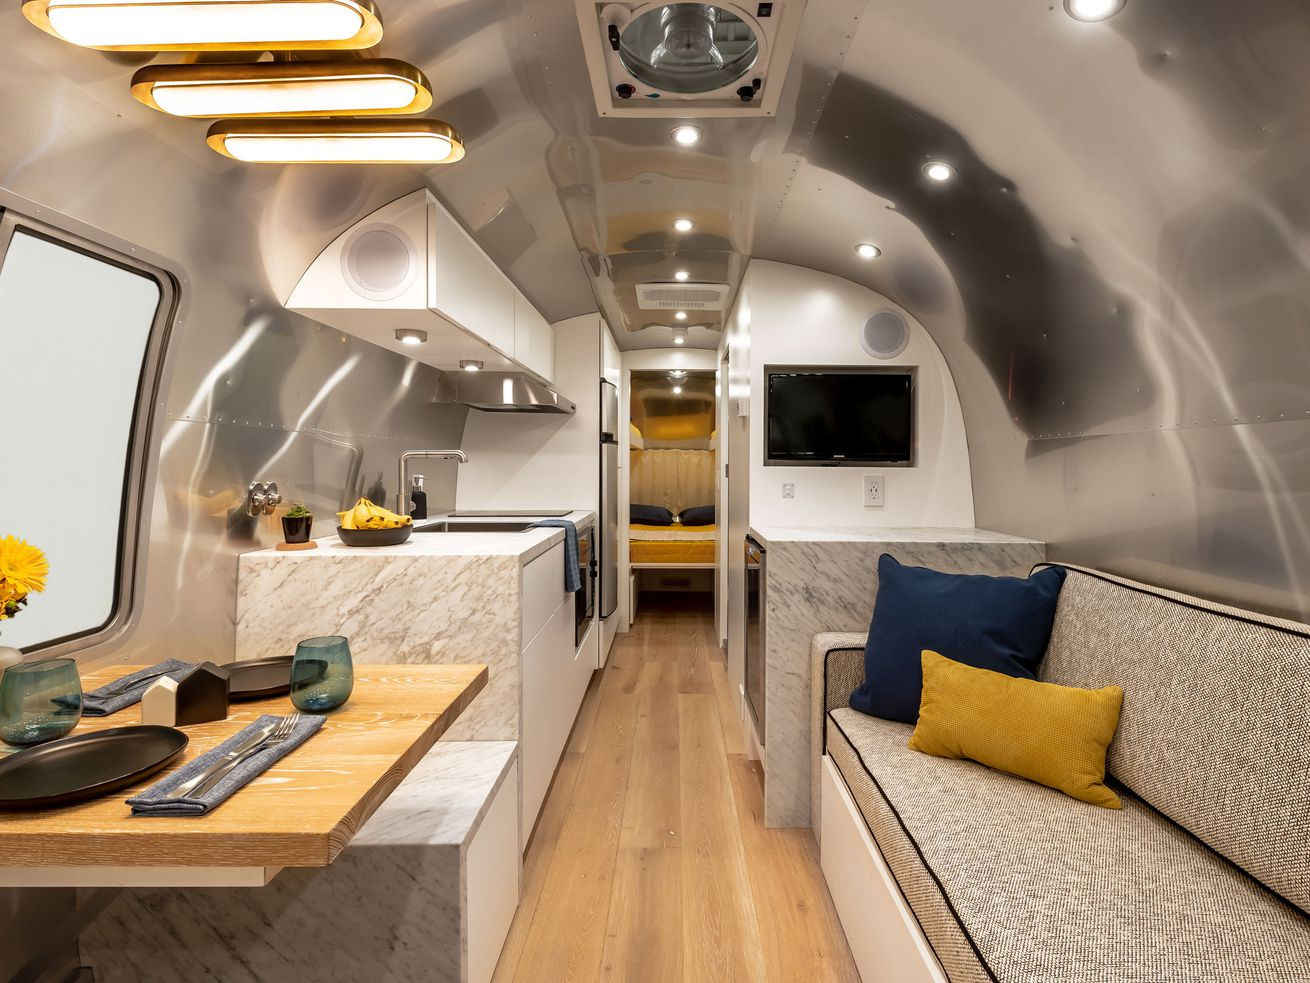 Renovated vintage Airstream is like a chic apartment on wheels